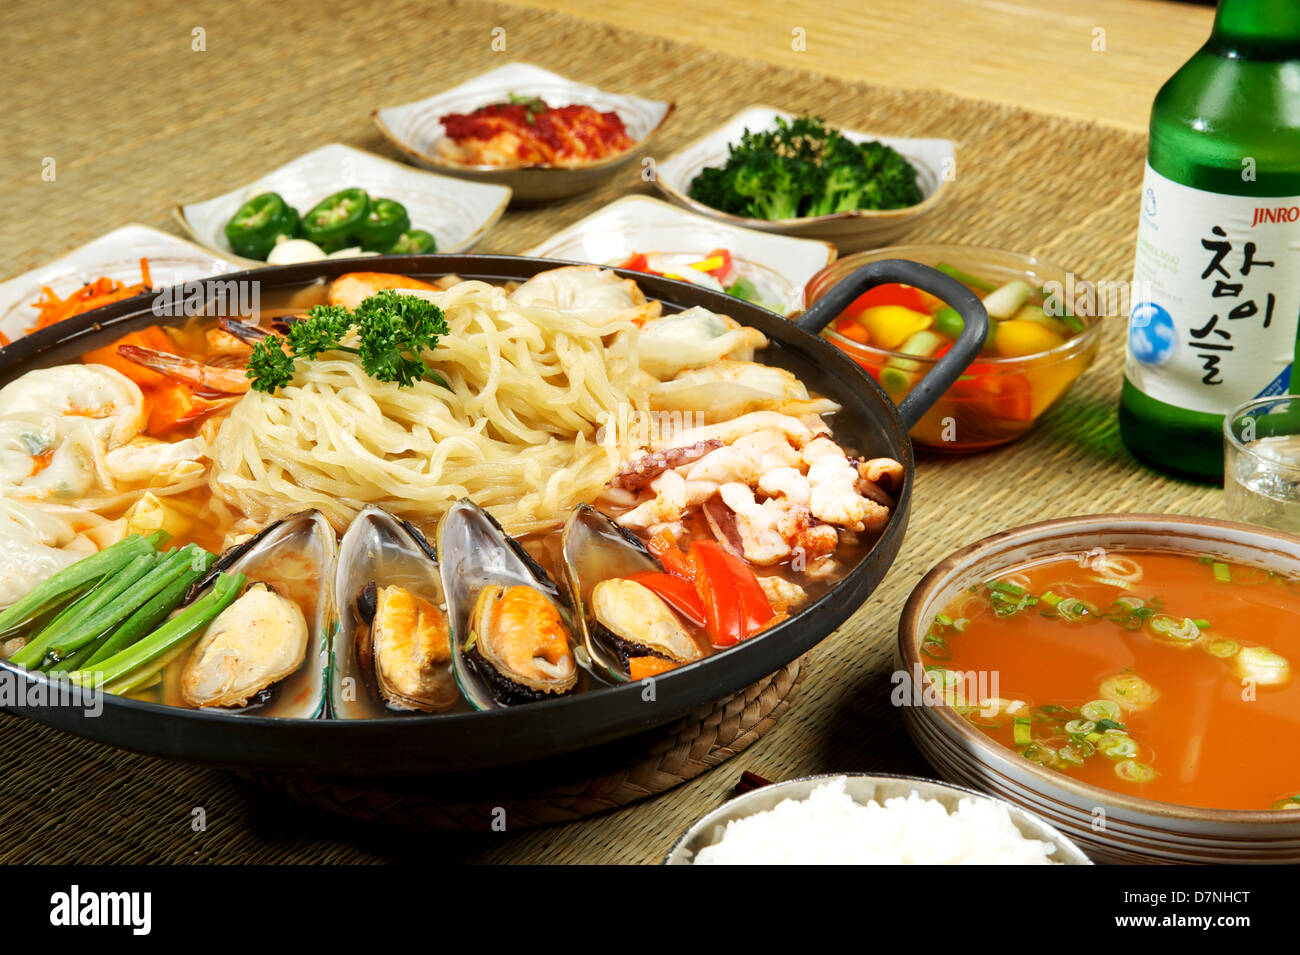 Korean Seafood Hot Pot At A Korean Restaurant Mussels And Noodles Stock Image